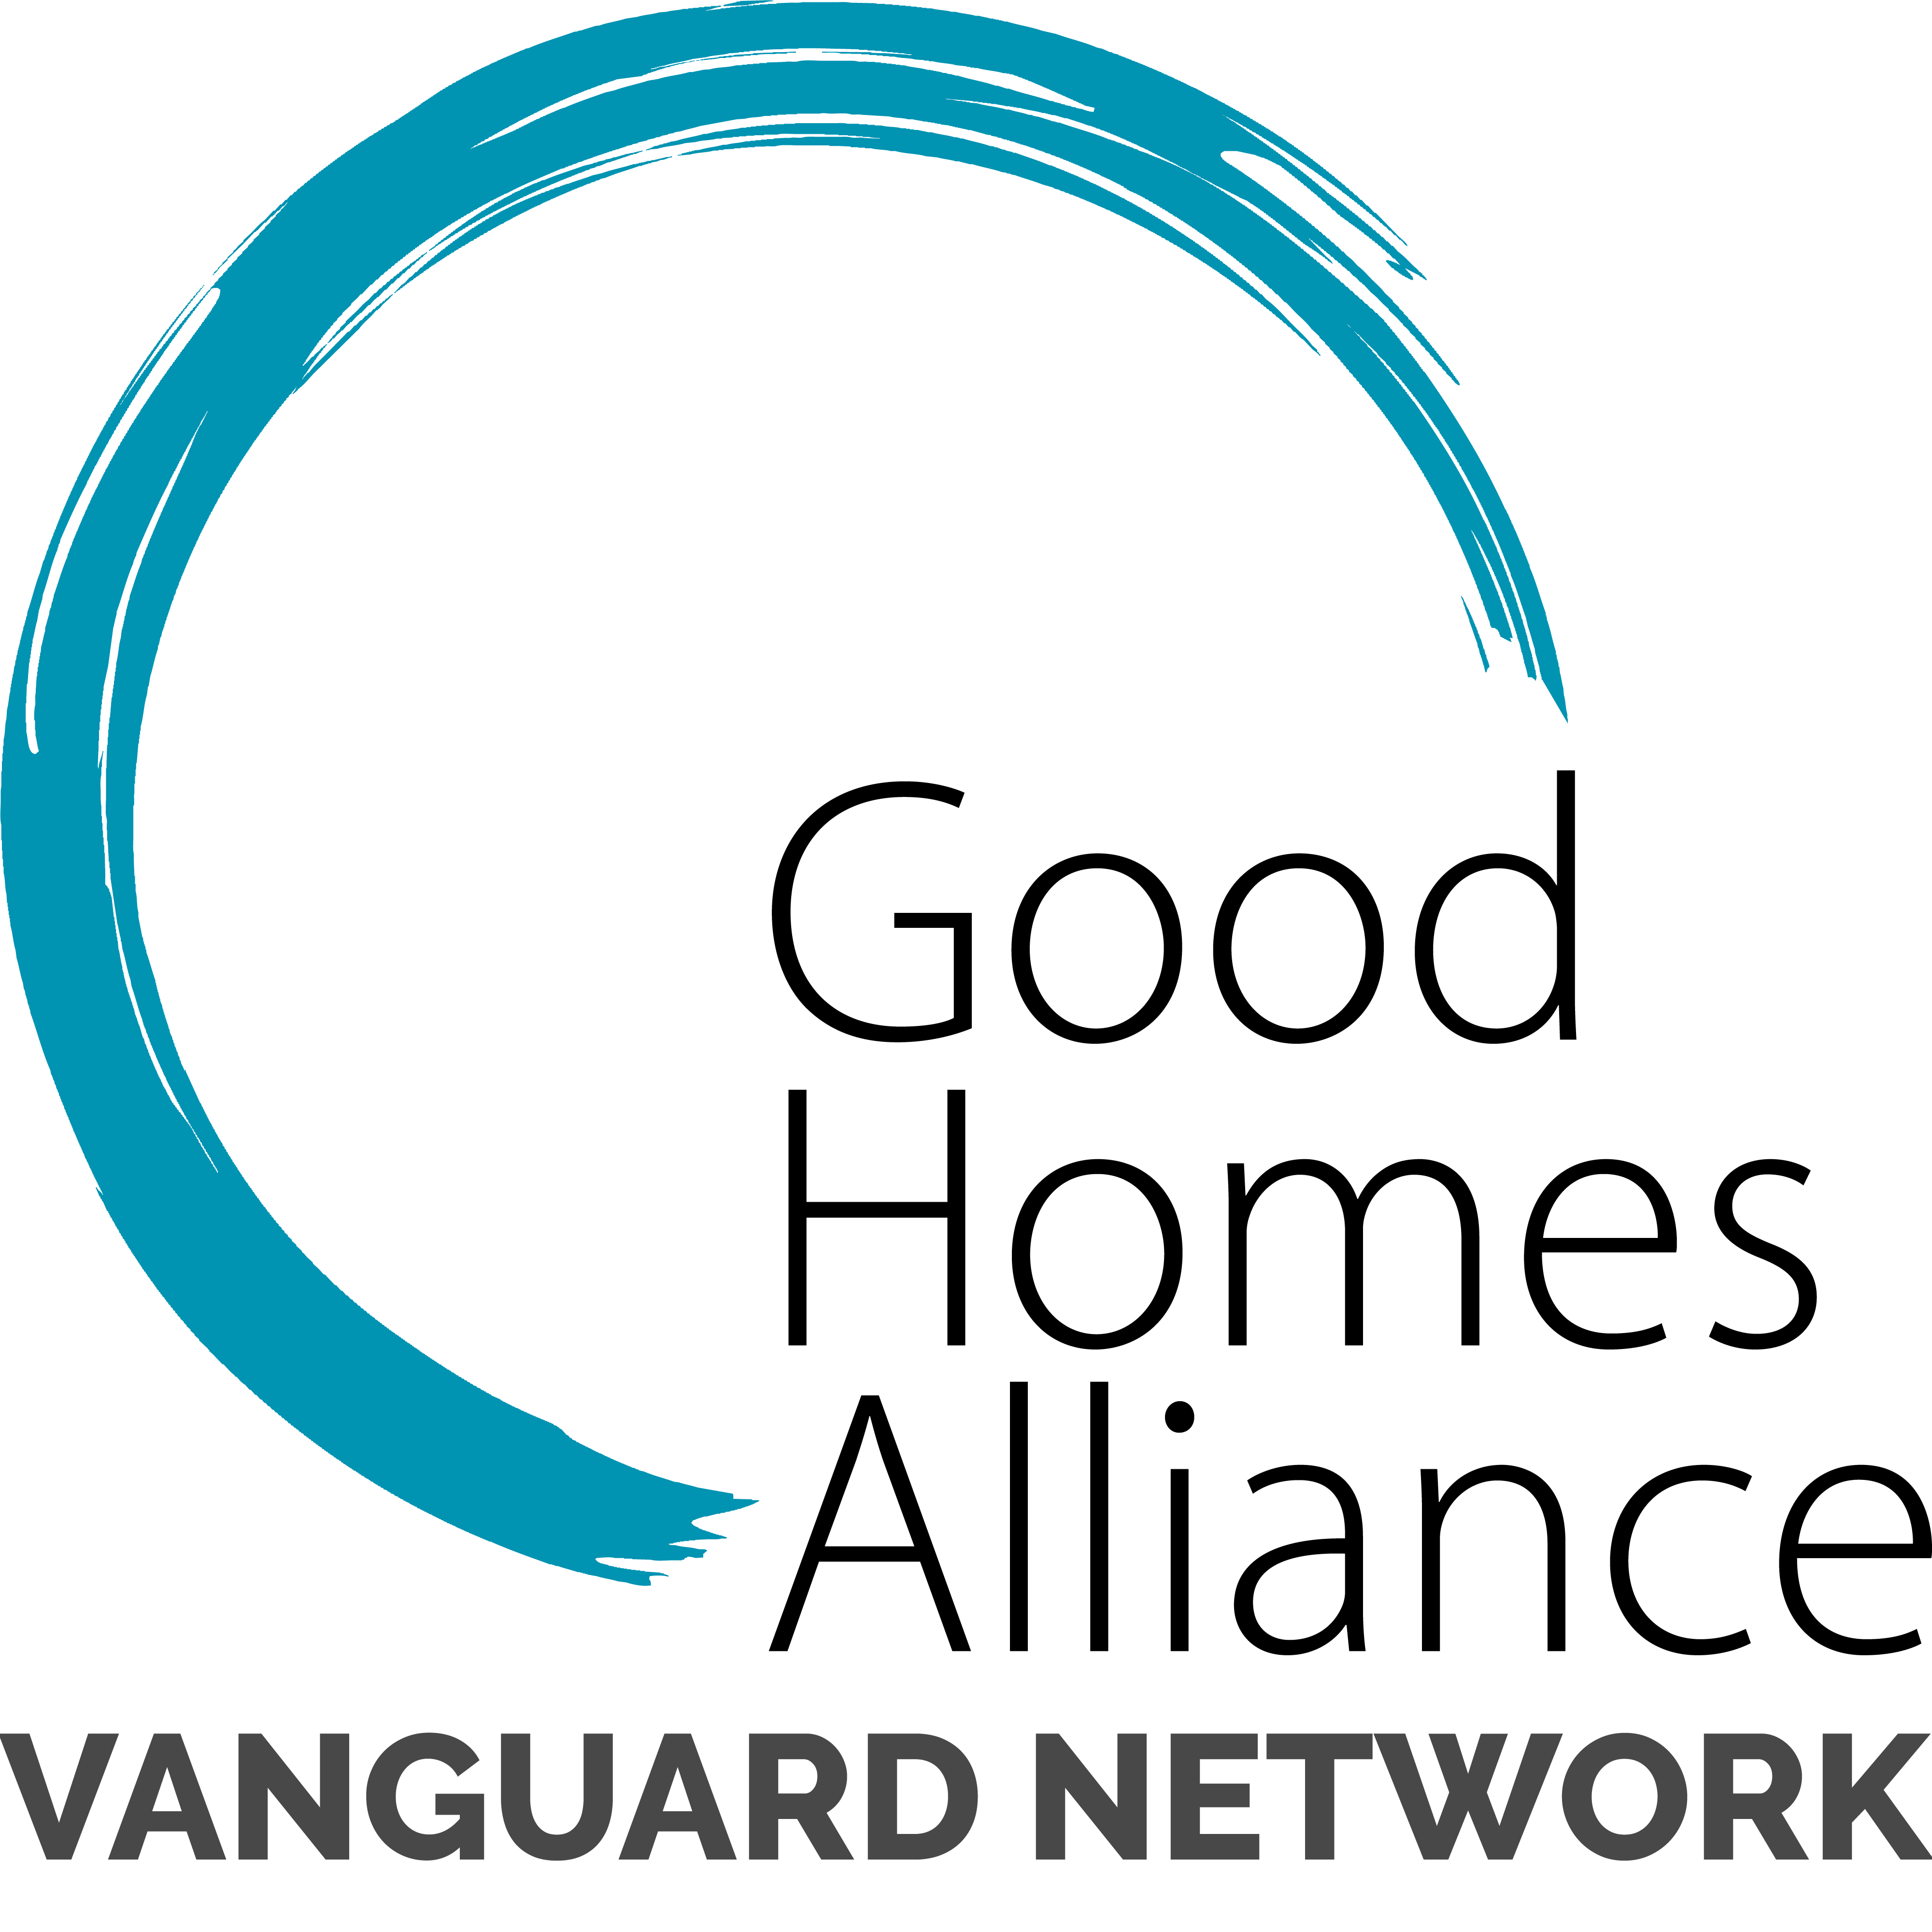 GHA welcome BCP Council and Poole Housing Partnership to fast-growing Vanguard Network